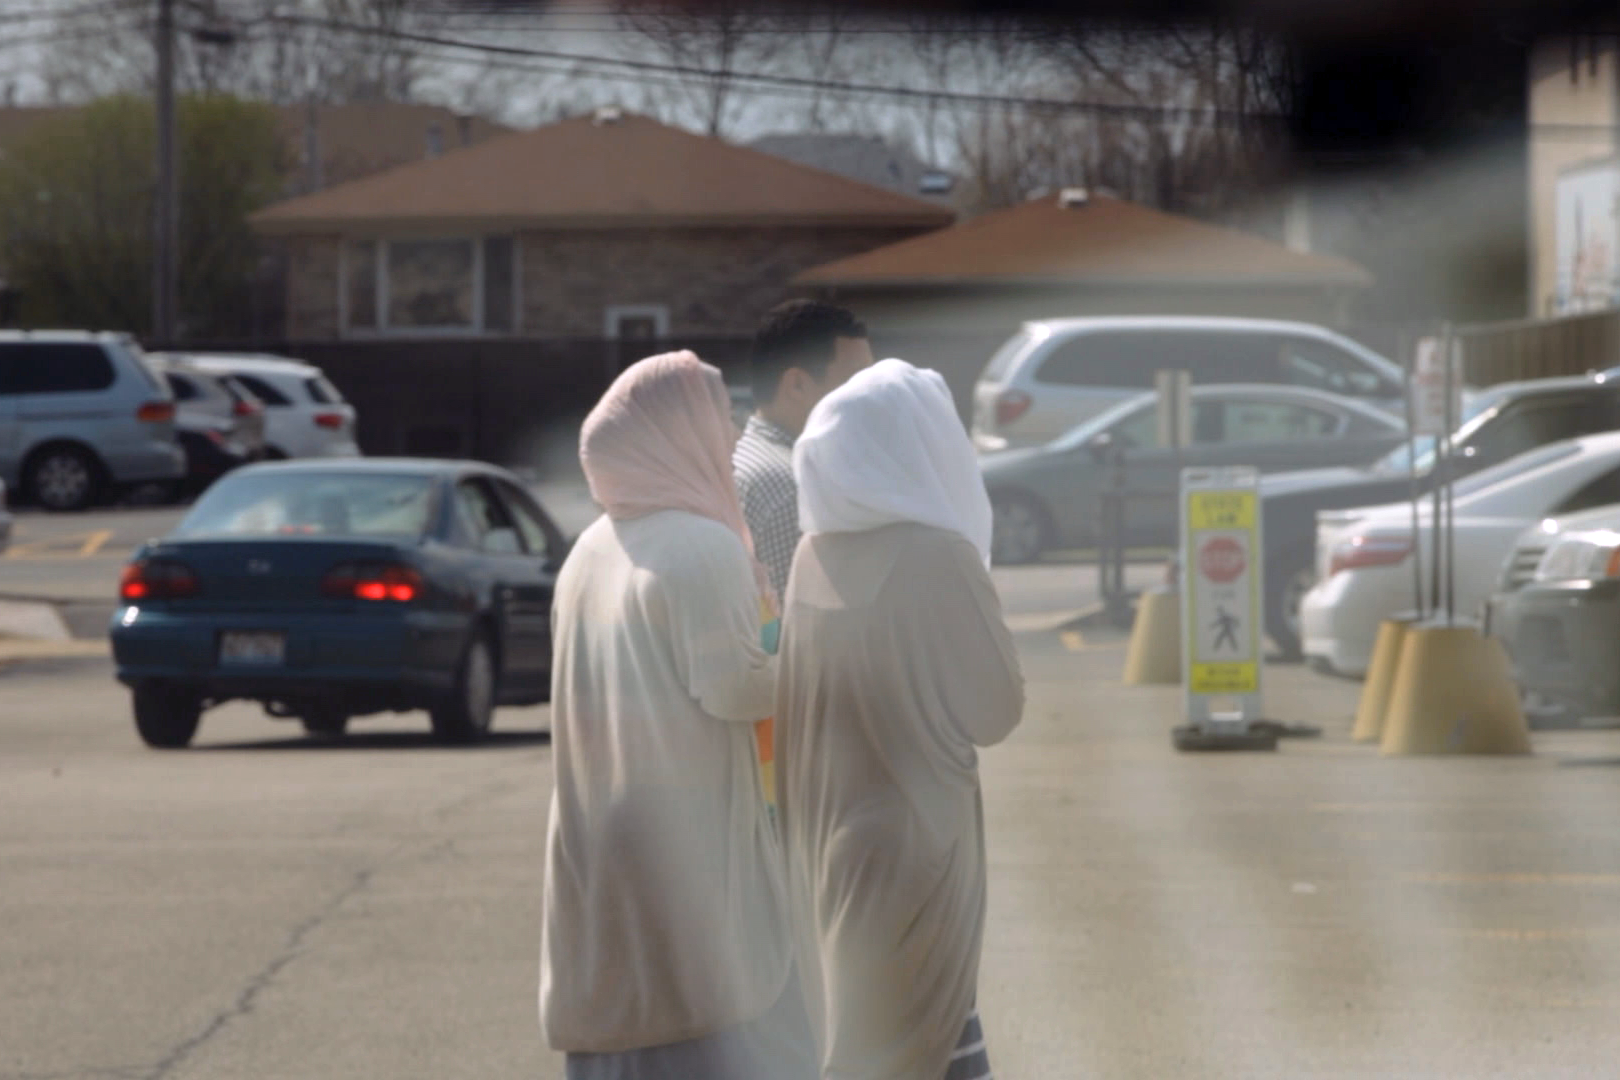 stillshot from the documentary featuring three people, two in hijab, and one man with short hair walking. the image is murky and taken from a distance, suggesting that it was taken from within a car